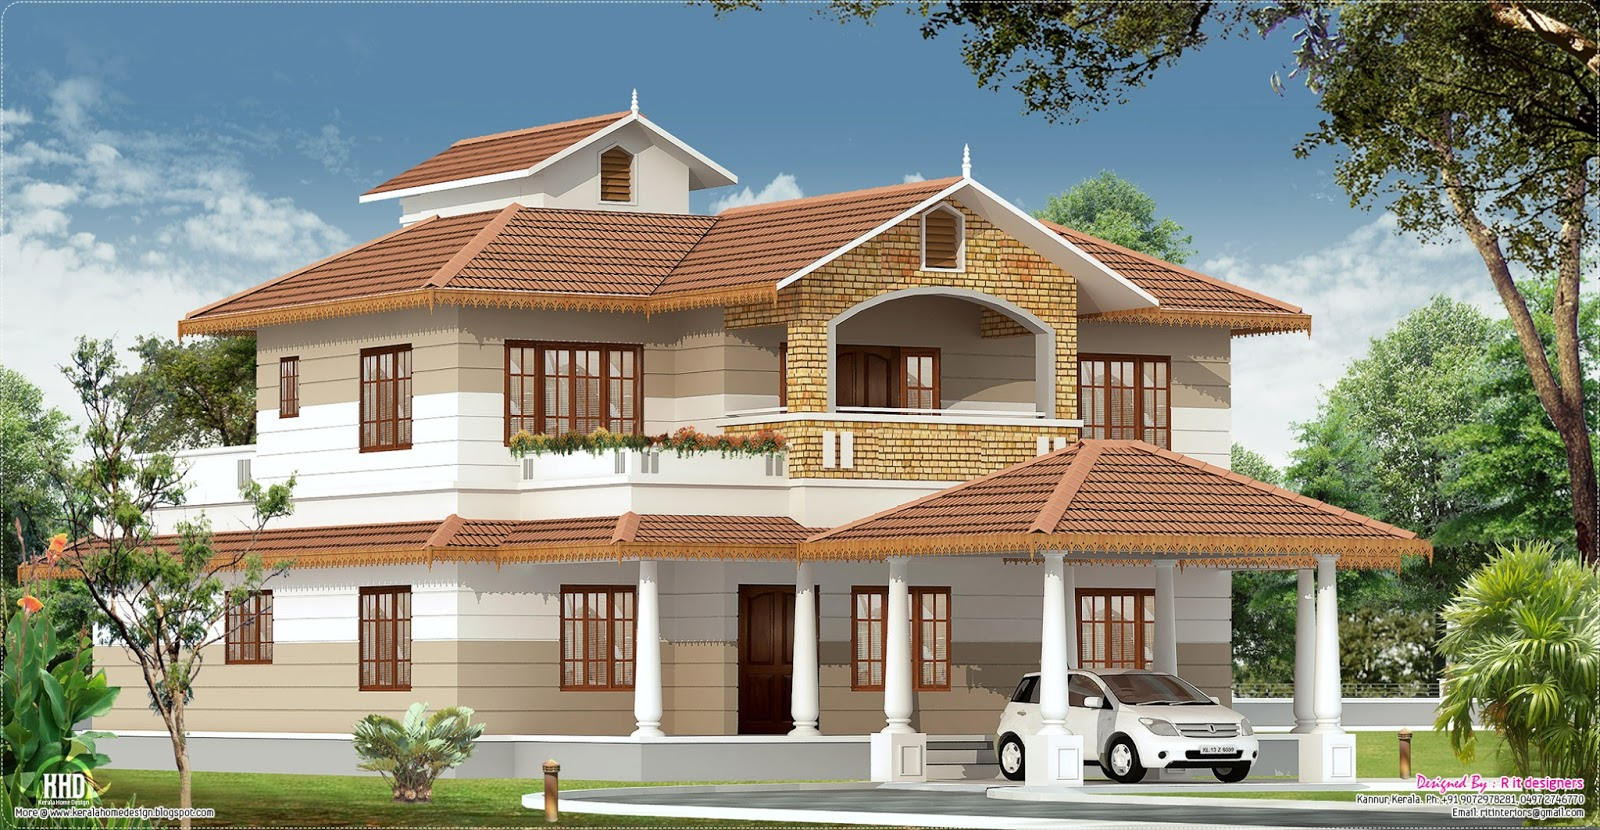 2700 kerala home with interior designs kerala for Latest kerala style home designs